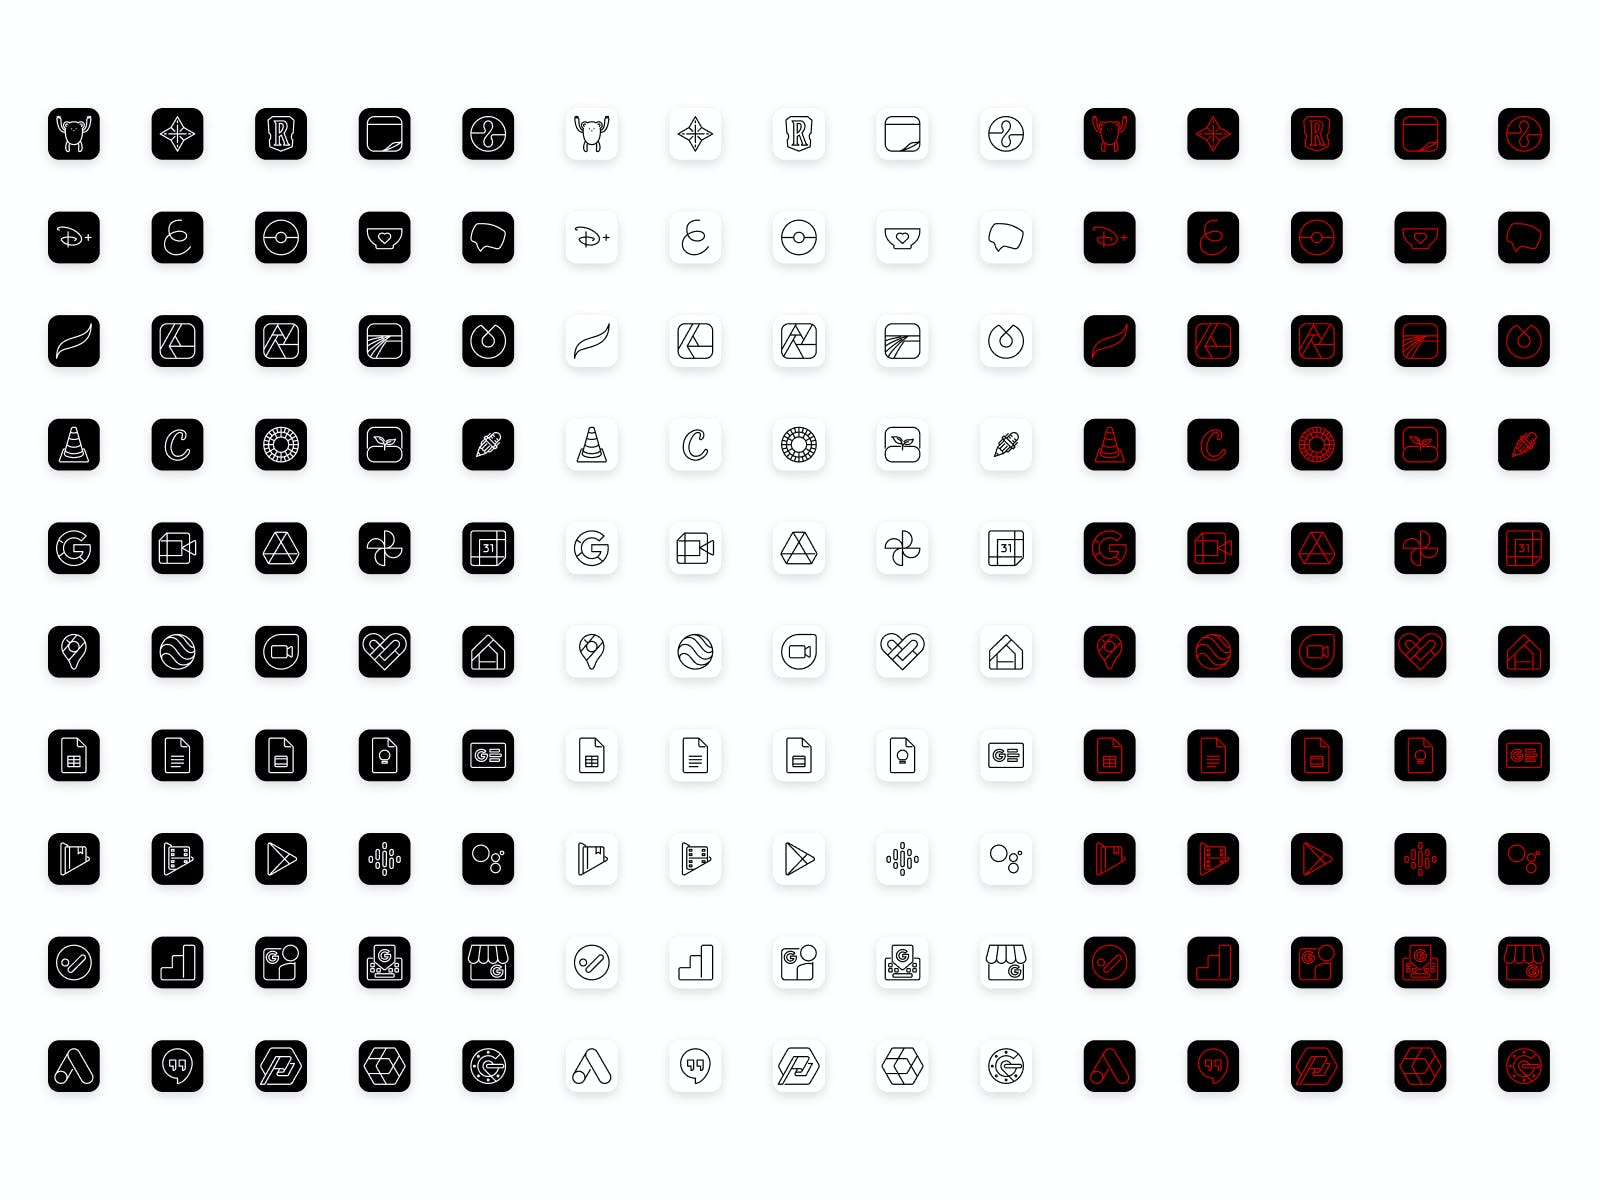 50 new custom icons for Lucid Premium in black, white, and scarlet colorways, including Google Suite icons.